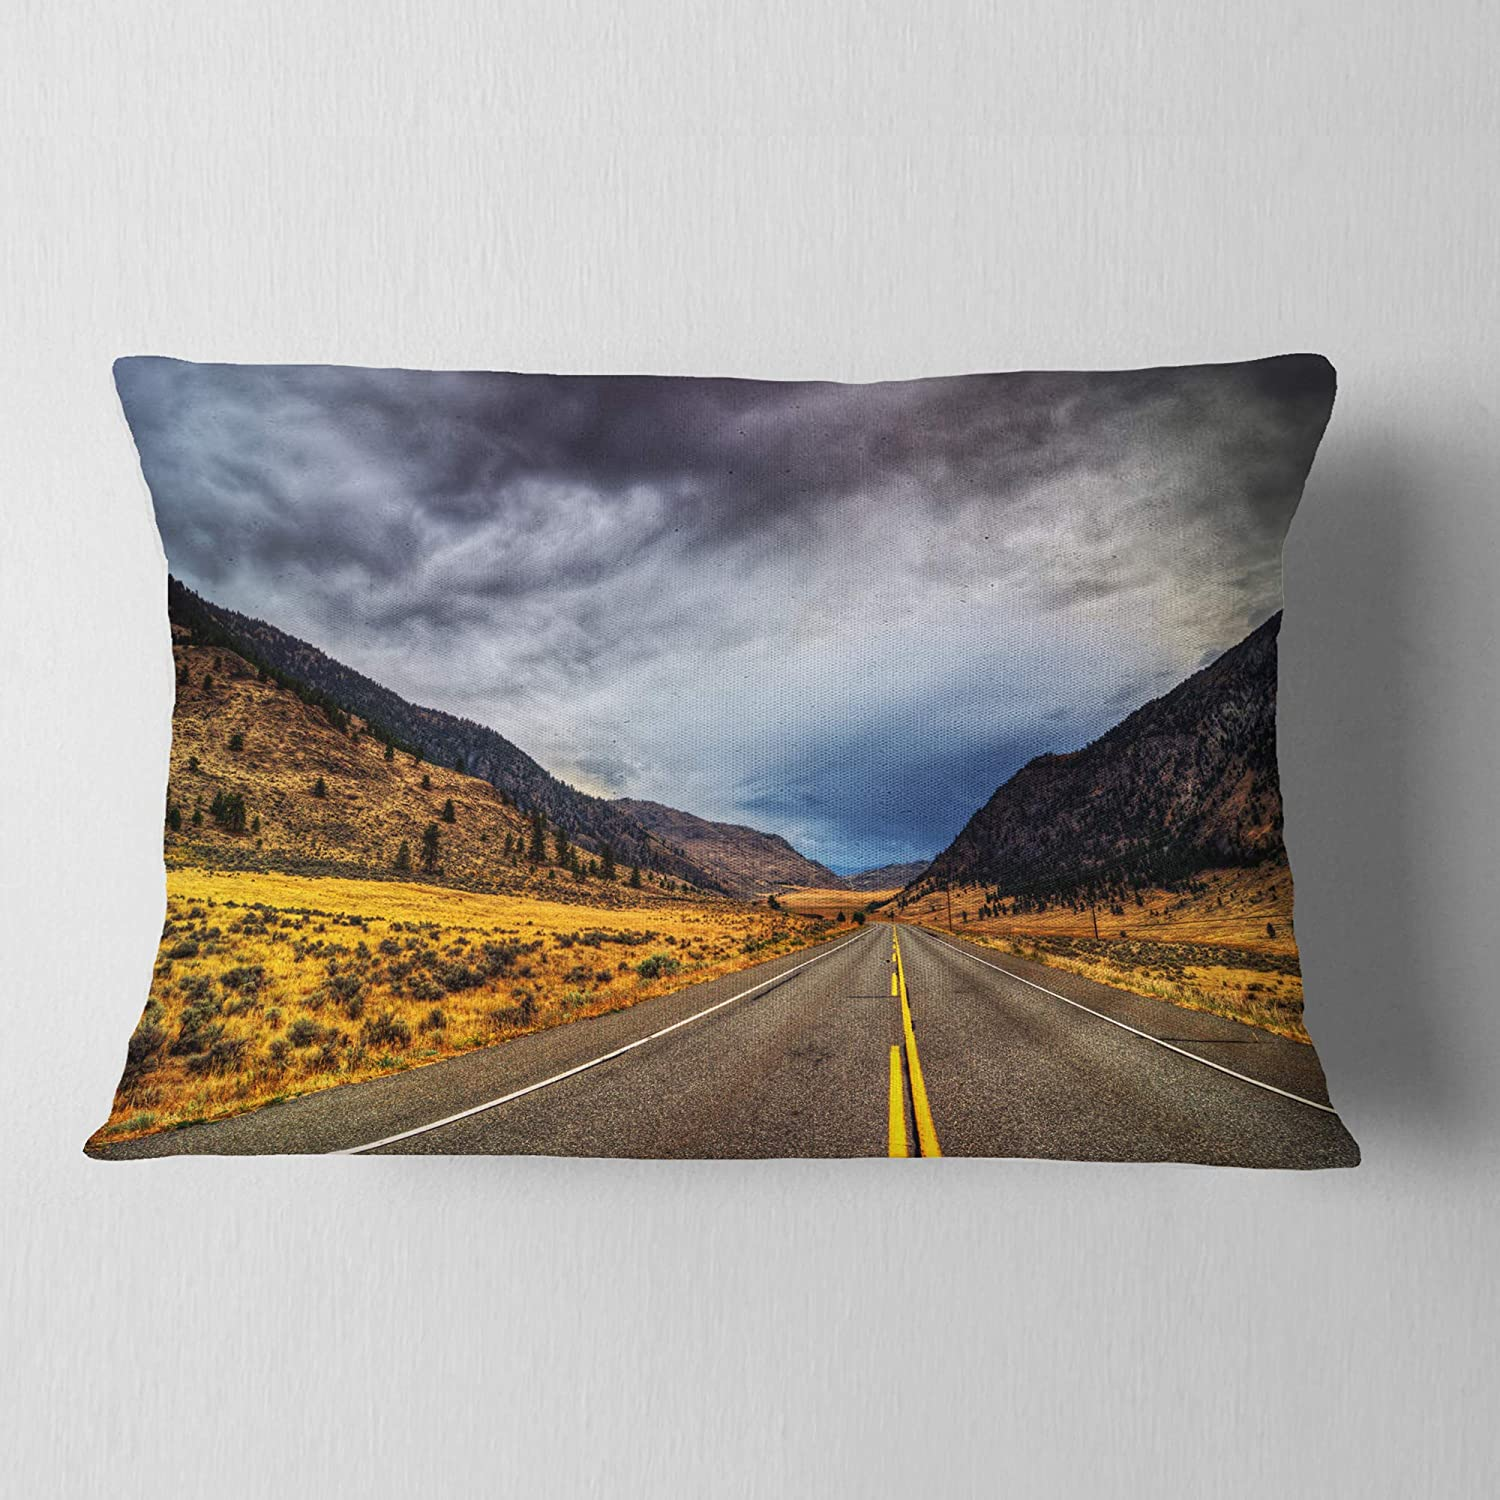 Designart CU14399-12-20 Mountain Desert Highway British Columbia Landscape Printed Lumbar Cushion Cover for Living Room in Sofa Throw Pillow 12 in x 20 in Insert Side